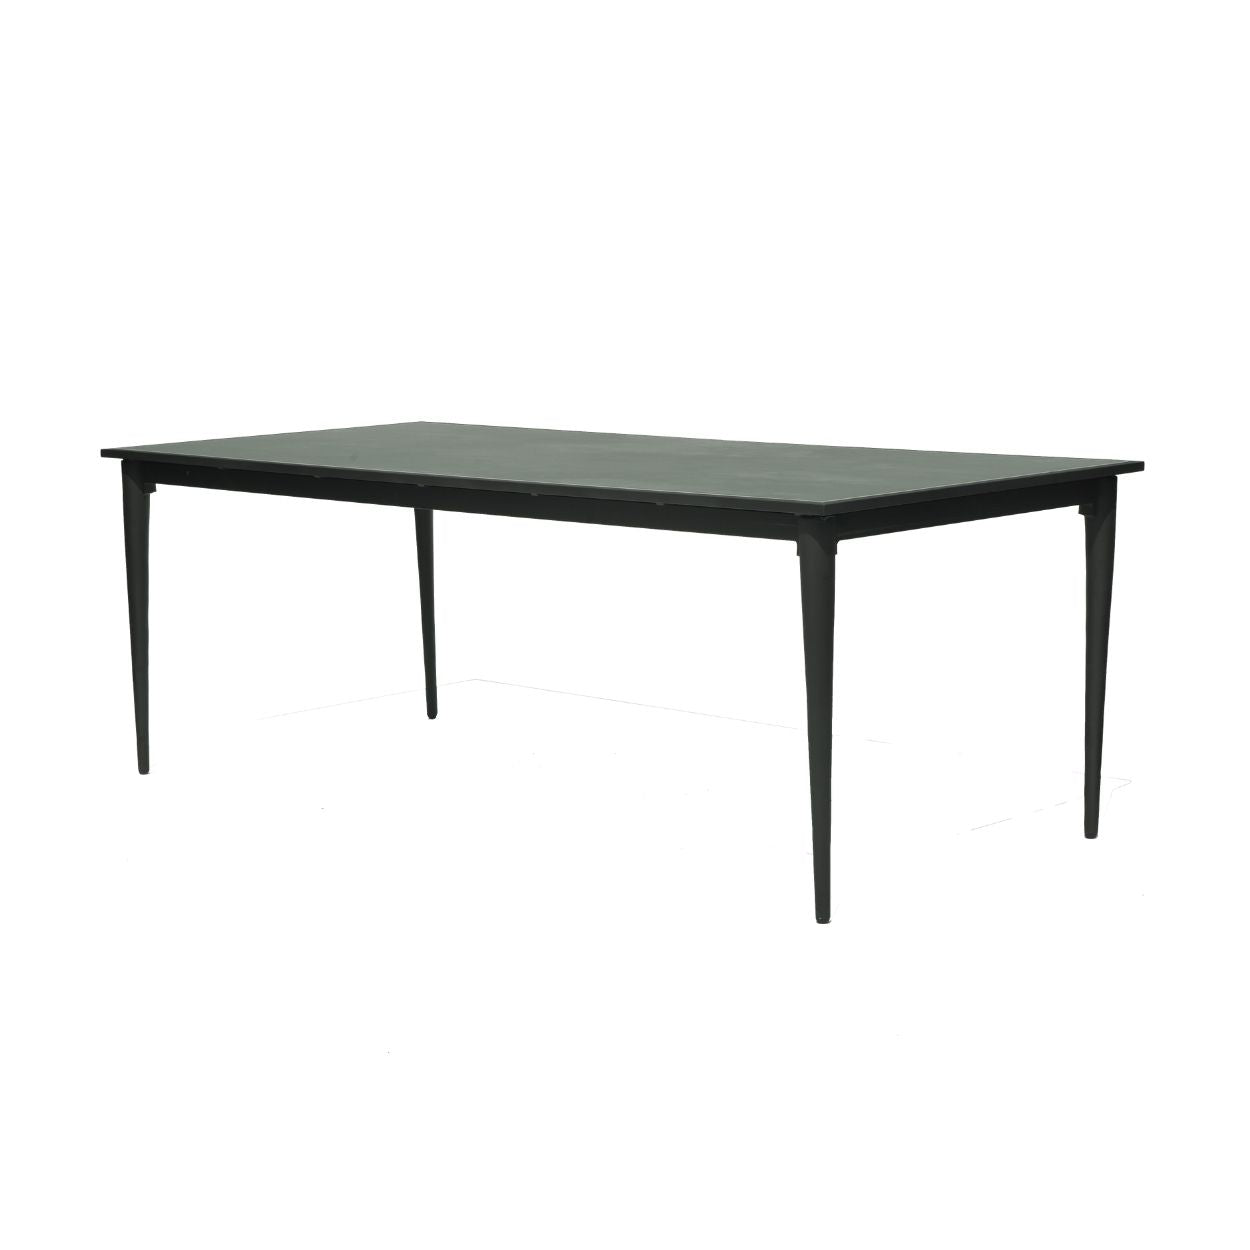 Serpent Rectangular Dining Table with Ceramic Top